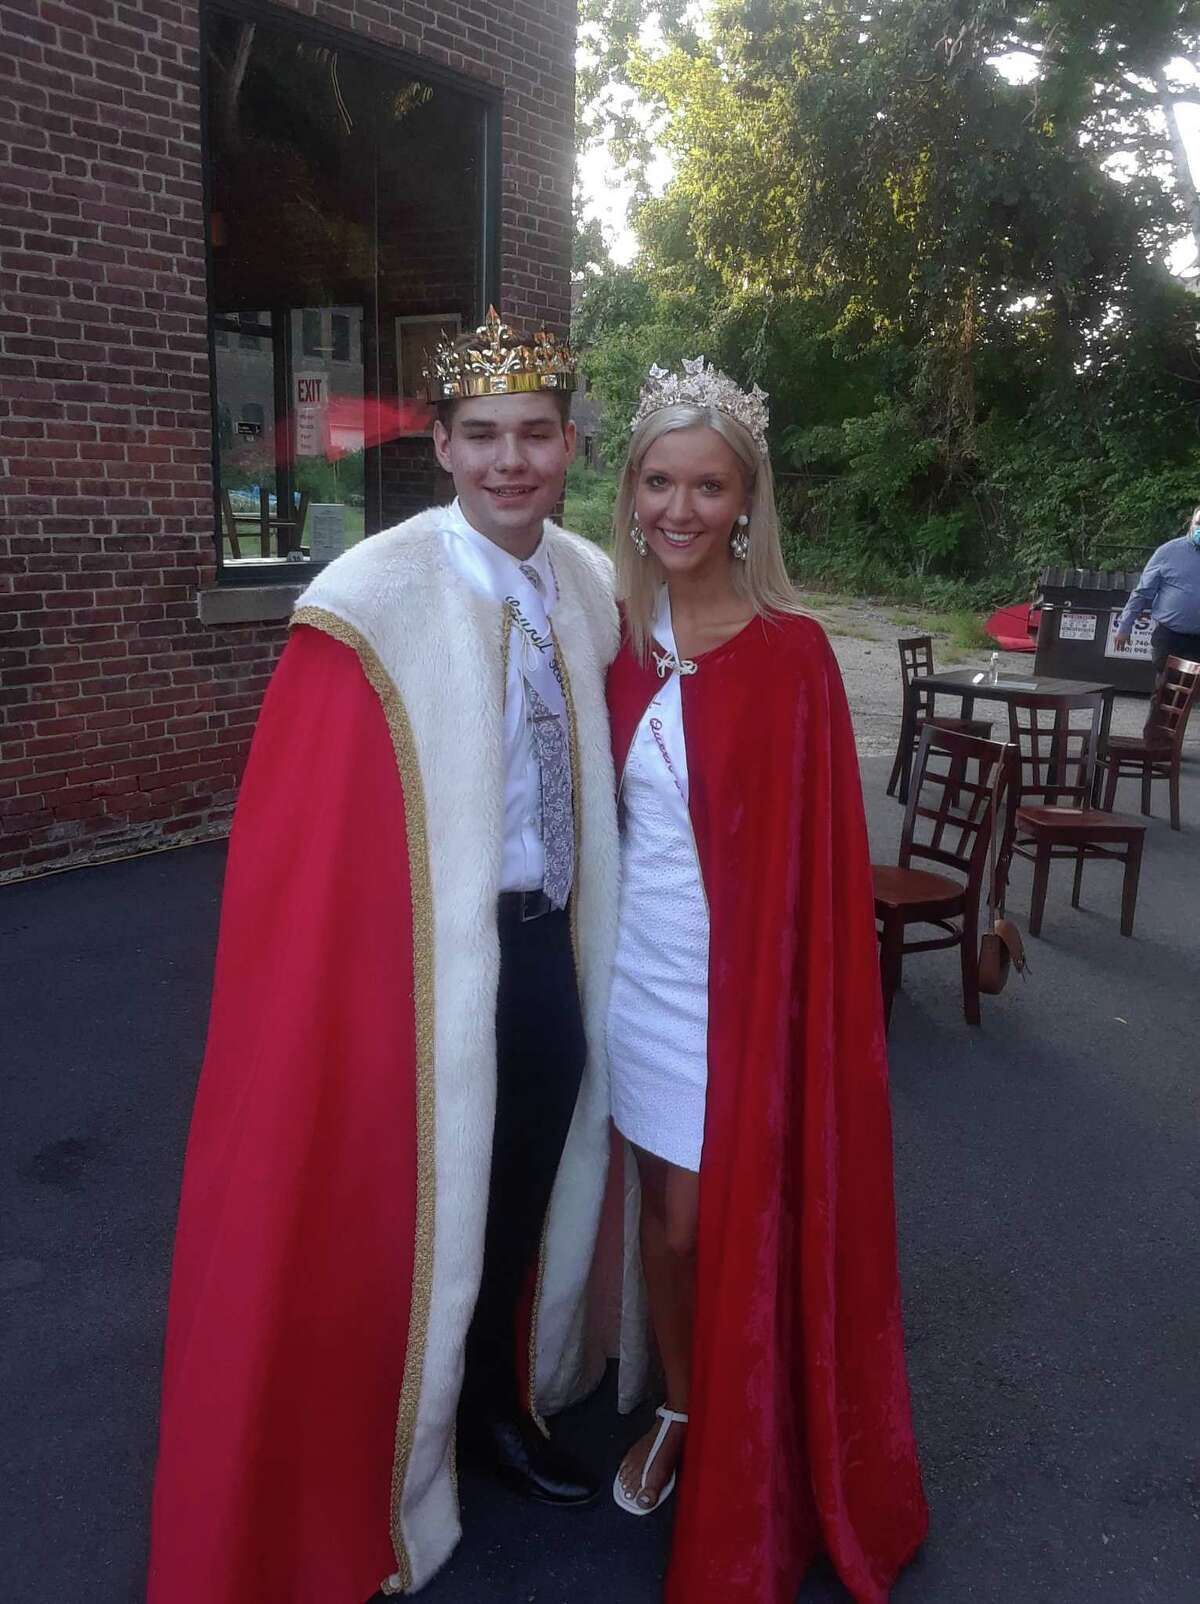 In 2020, the 86th annual Laurel Festival, which was almost completely canceled by COVID-19, included the Laurel Queen and King contest.